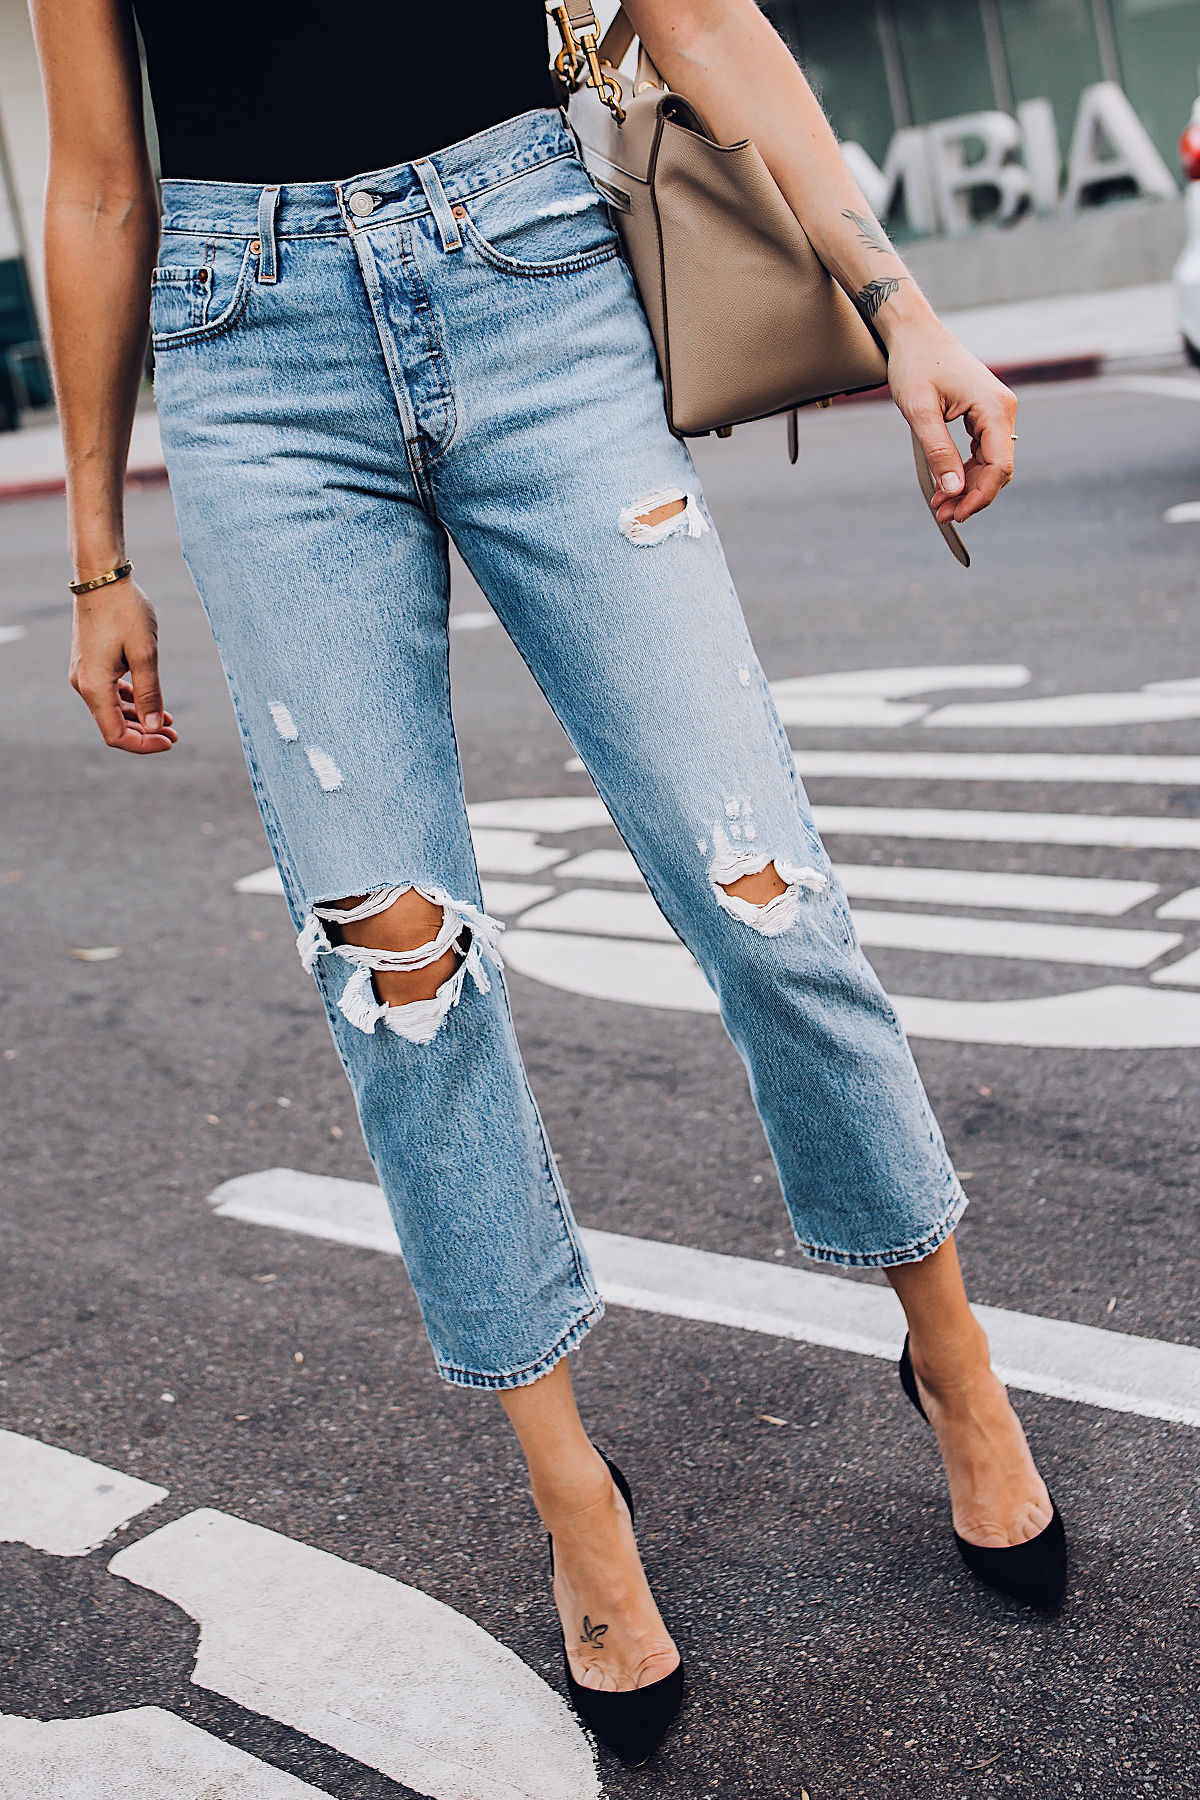 Woman Wearing Fashion Jackson Levis Wedgie Straight Leg Ripped Jeans Black Pumps Fashion Jackson San Diego Fashion Blogger Street Style